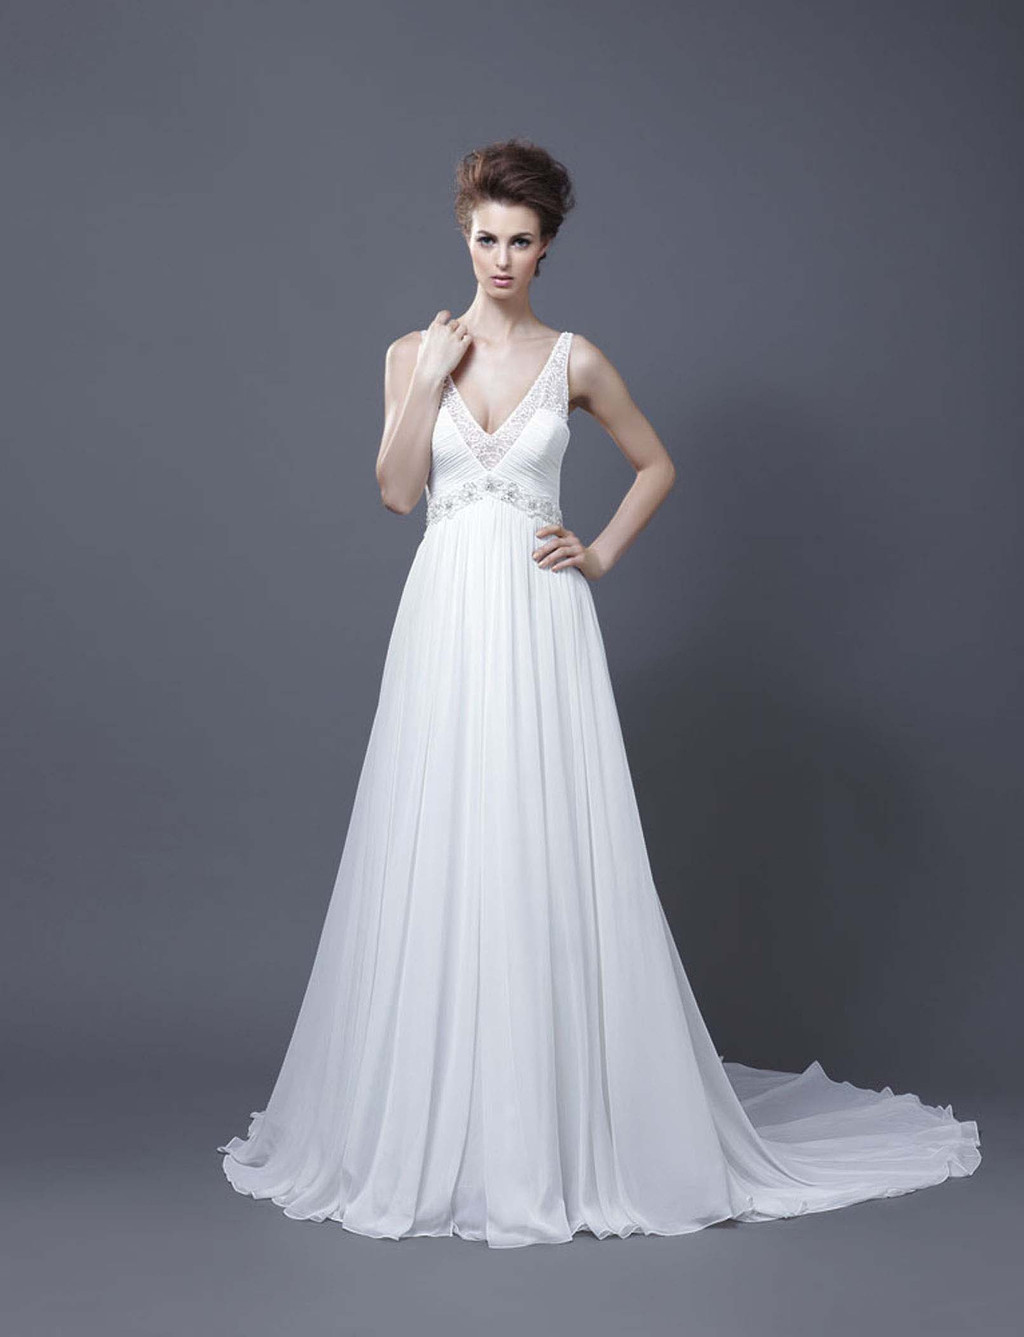 2013-wedding-dress-by-enzoani-bridal-harley.full